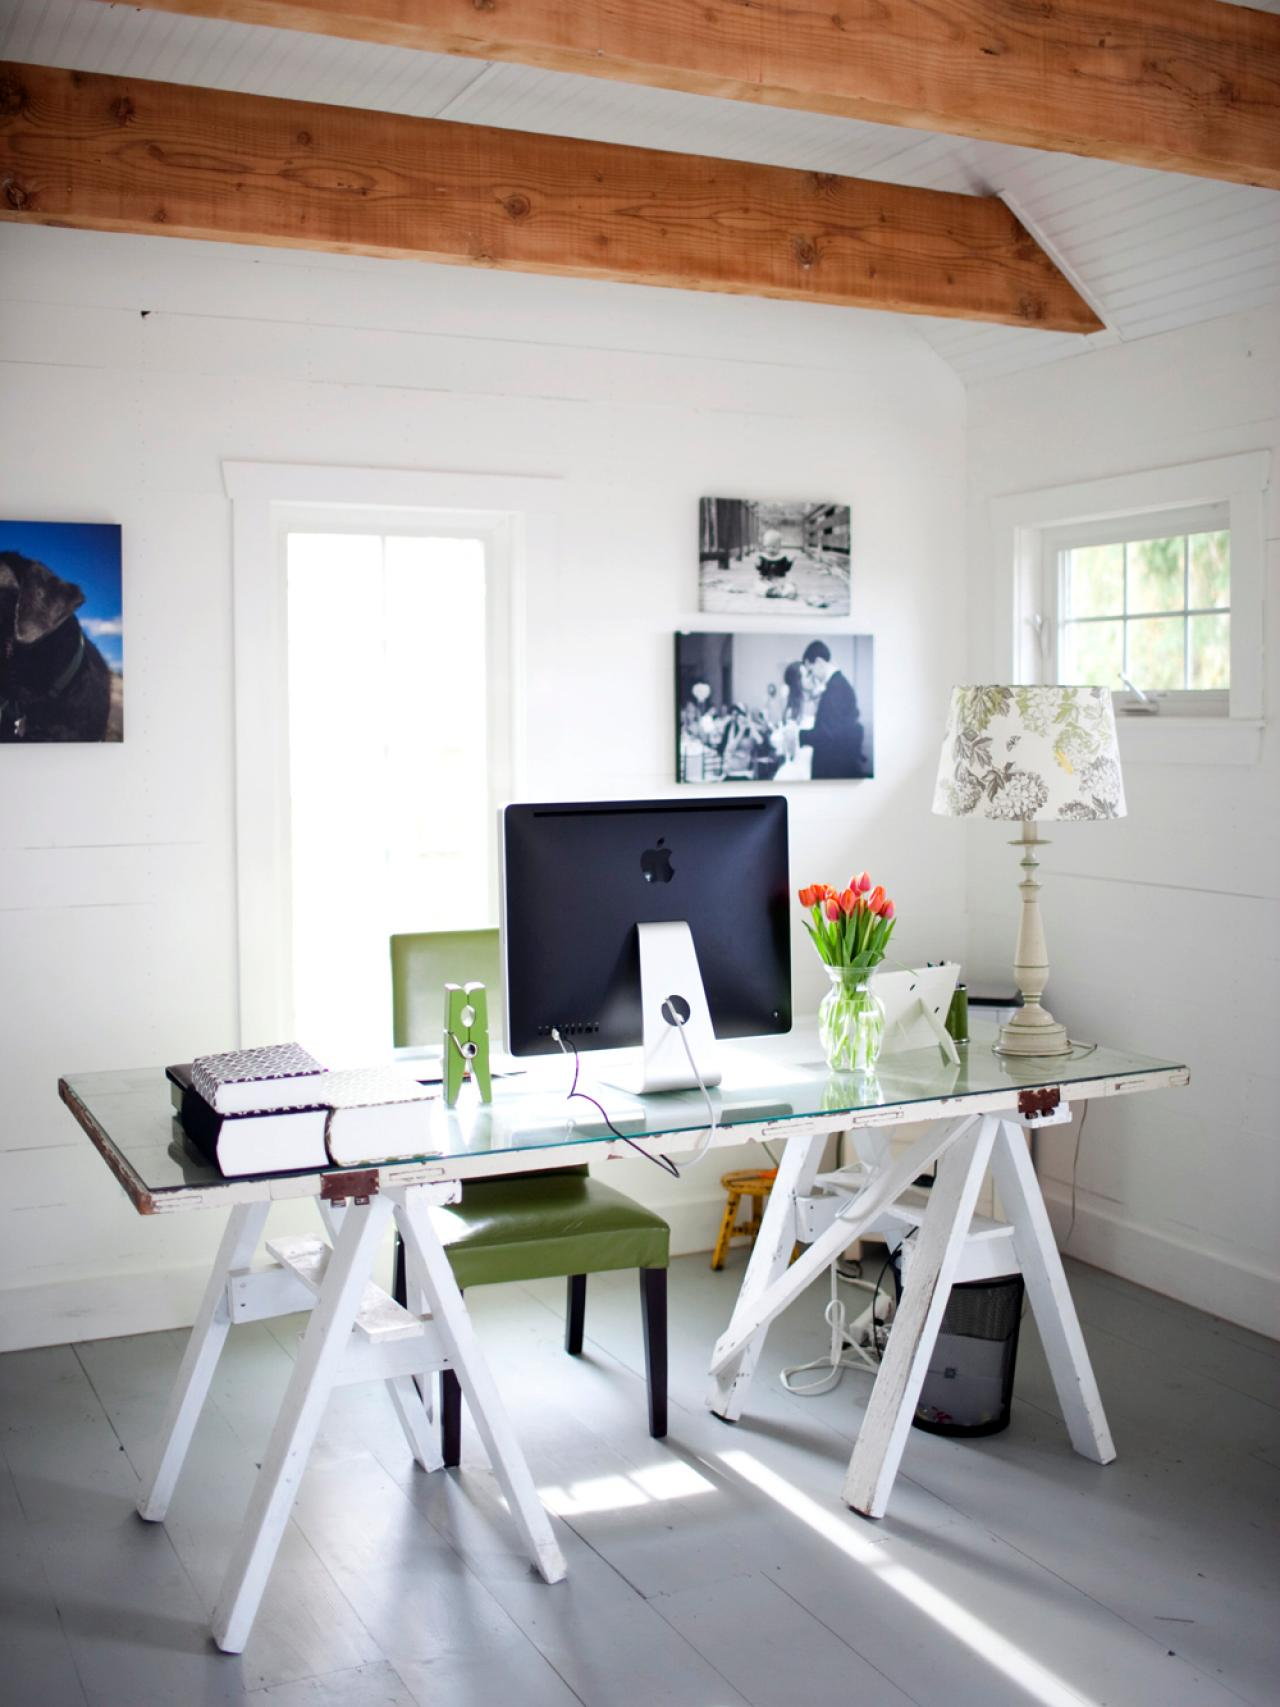 Take Your Workspace From Drab To Fab With These 10 Diy Office